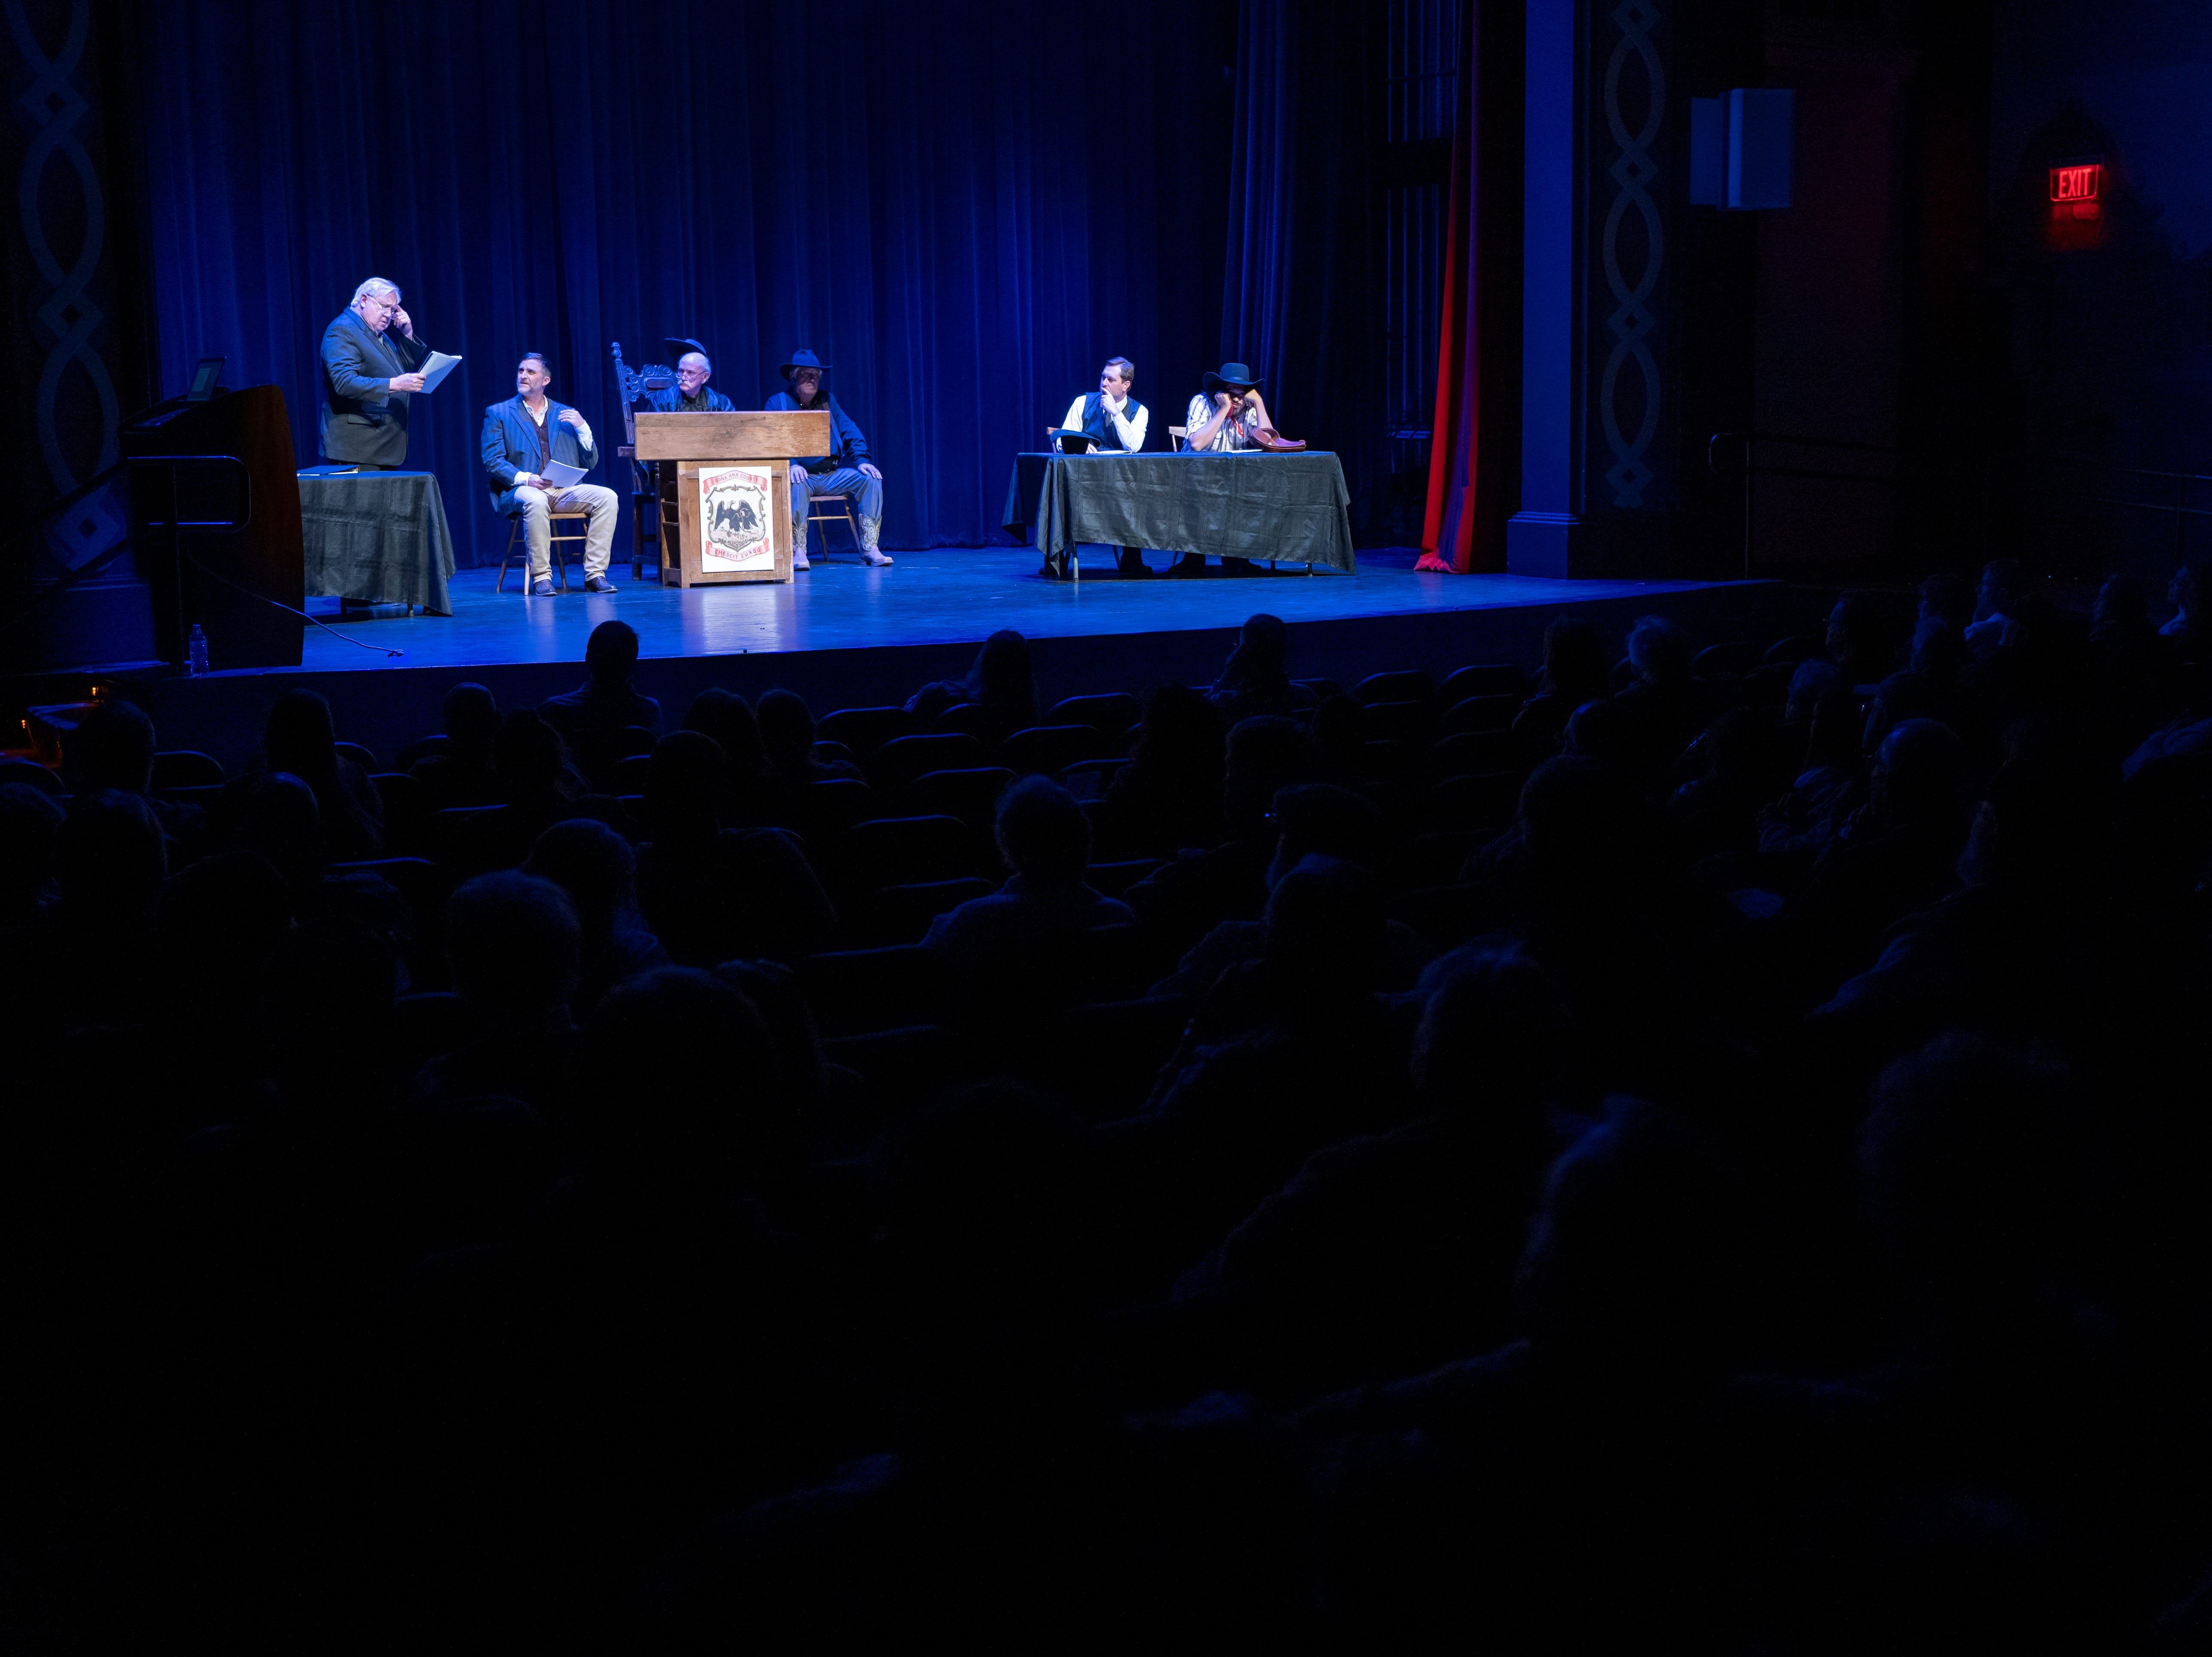 Actors reenact the 1909 trial of Jesse Wayne Brazel, the alleged murderer of Pat Garrett, at the Rio Grande Theatre on Saturday, Feb. 2, 2019. Pictured are John Wood, from left, as New Mexico Attorney General James Hervey; Scott Galbreath as witness for the prosecution Carl Adamson; Bob Gamboa playing Presiding Justice of the Peace Manuel Lopez; Rick Eldridge playing the baliff; Jason Wyatt as Brazel's counsel Herbert Holt; and Mozart Pierson as Jesse Wayne Brazel.